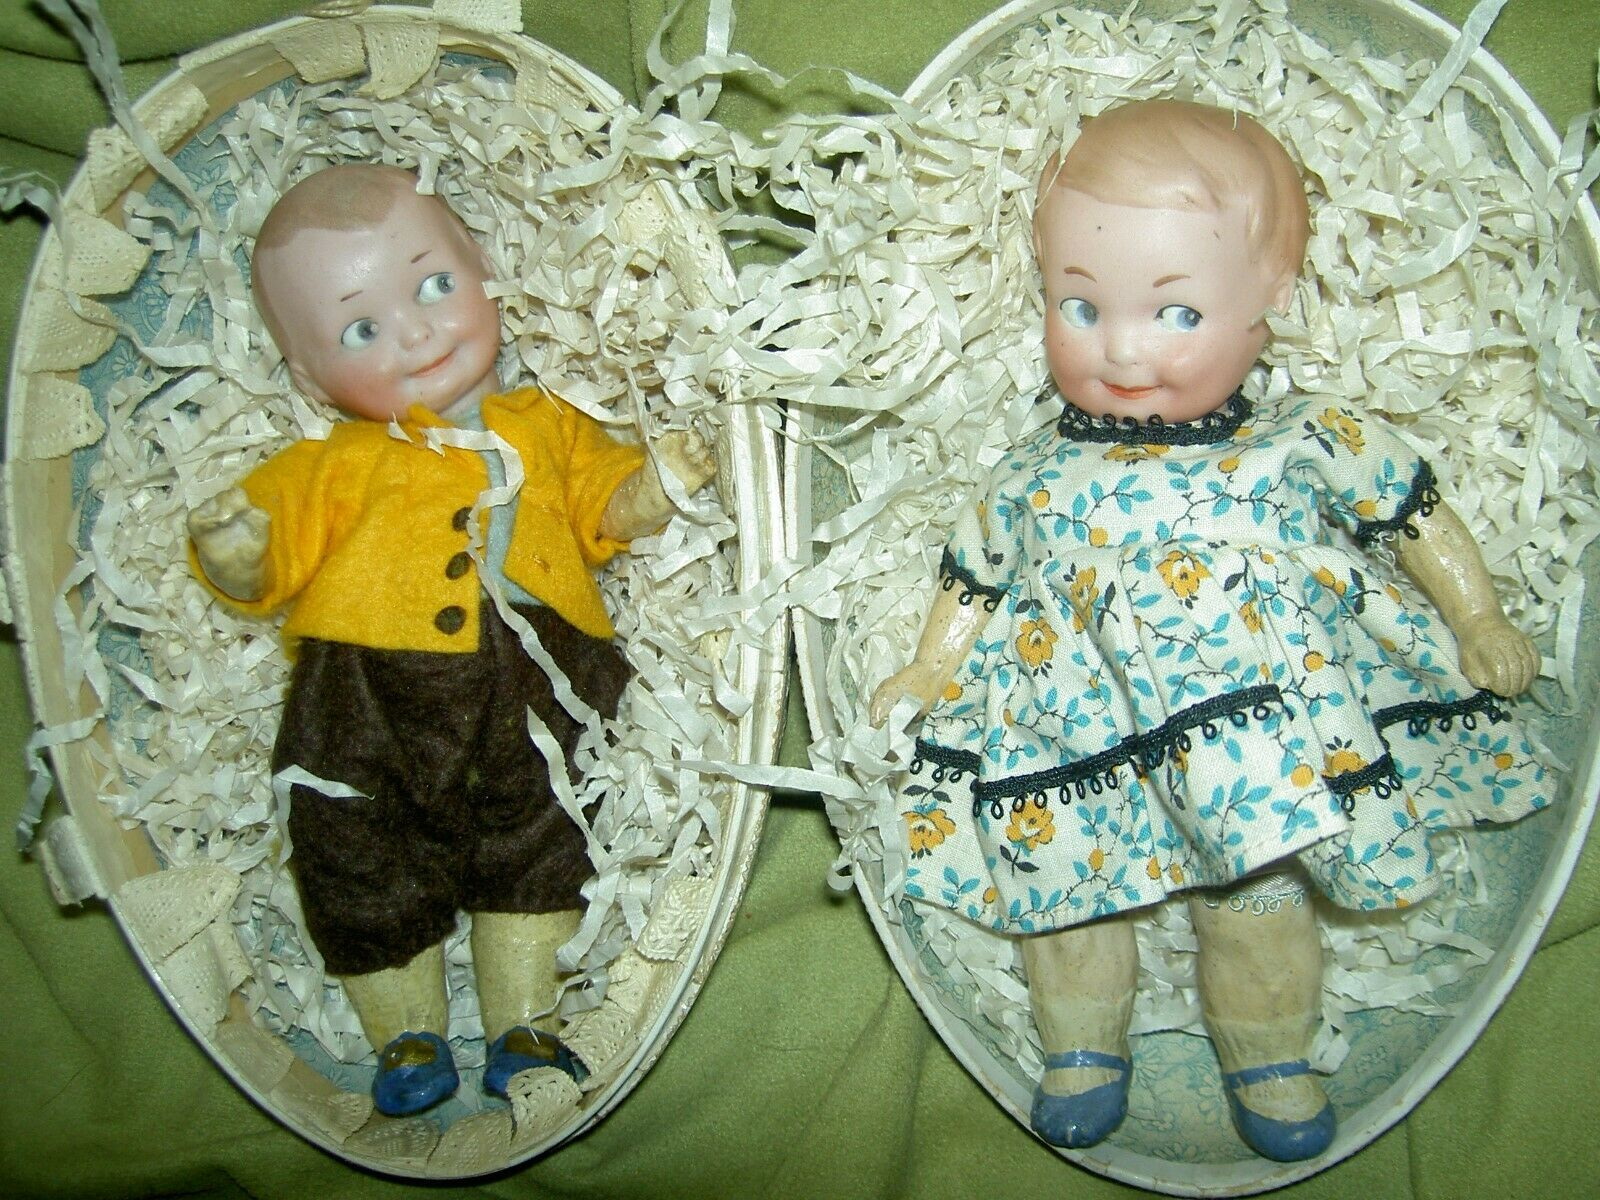 Darling PAIR 1912 German Armand Marseille antique bisque GOOGLY 234 dolls in EGG